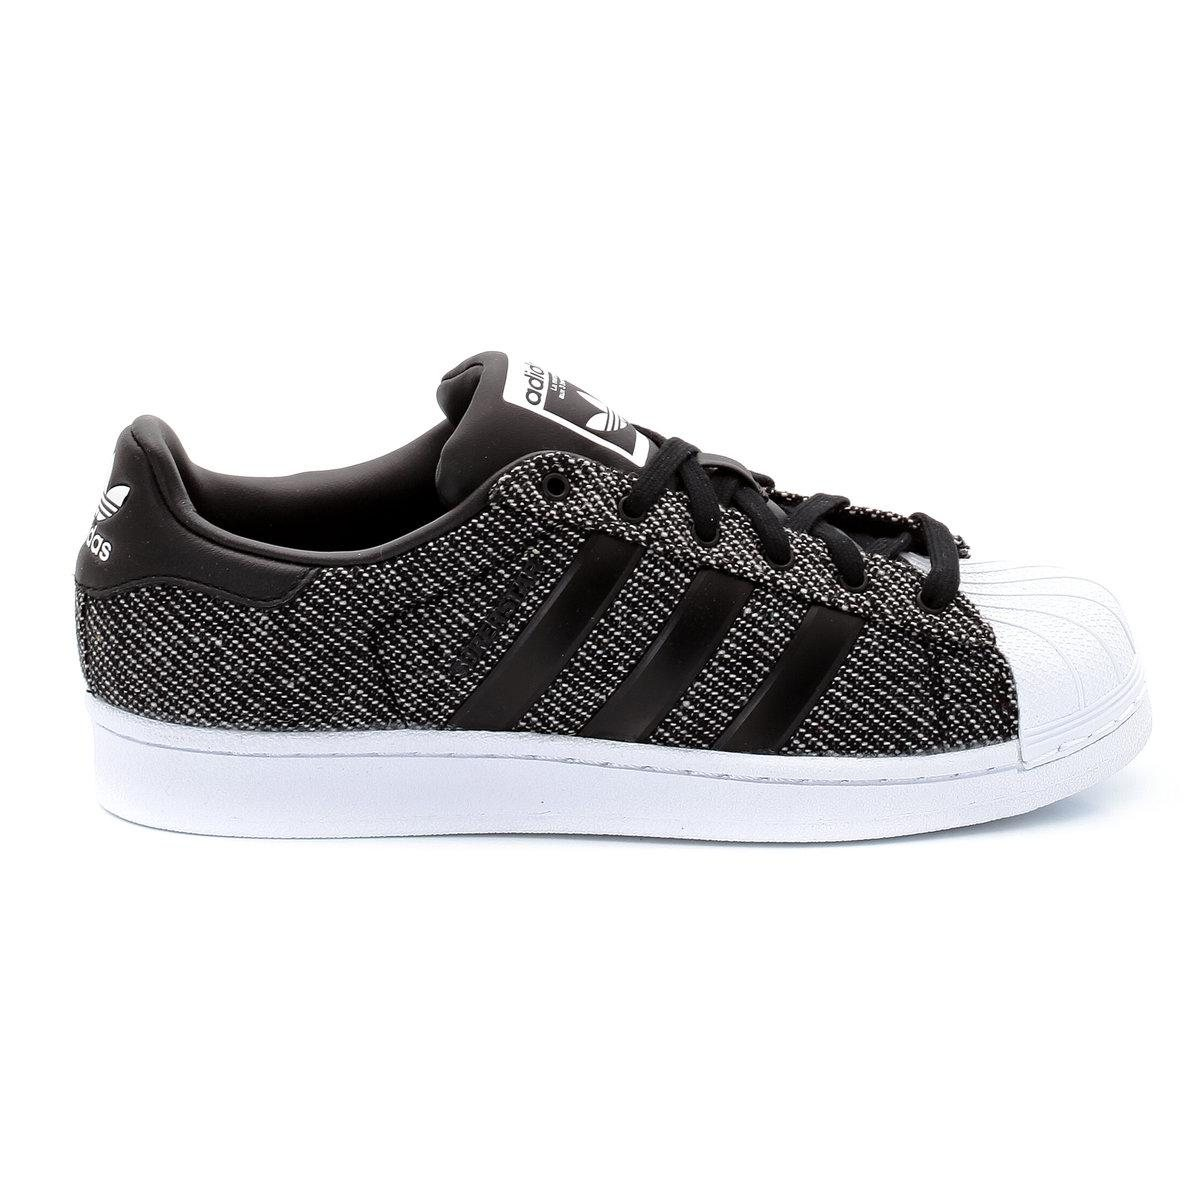 low priced 1900b b40e3 adidas superstar homme promo